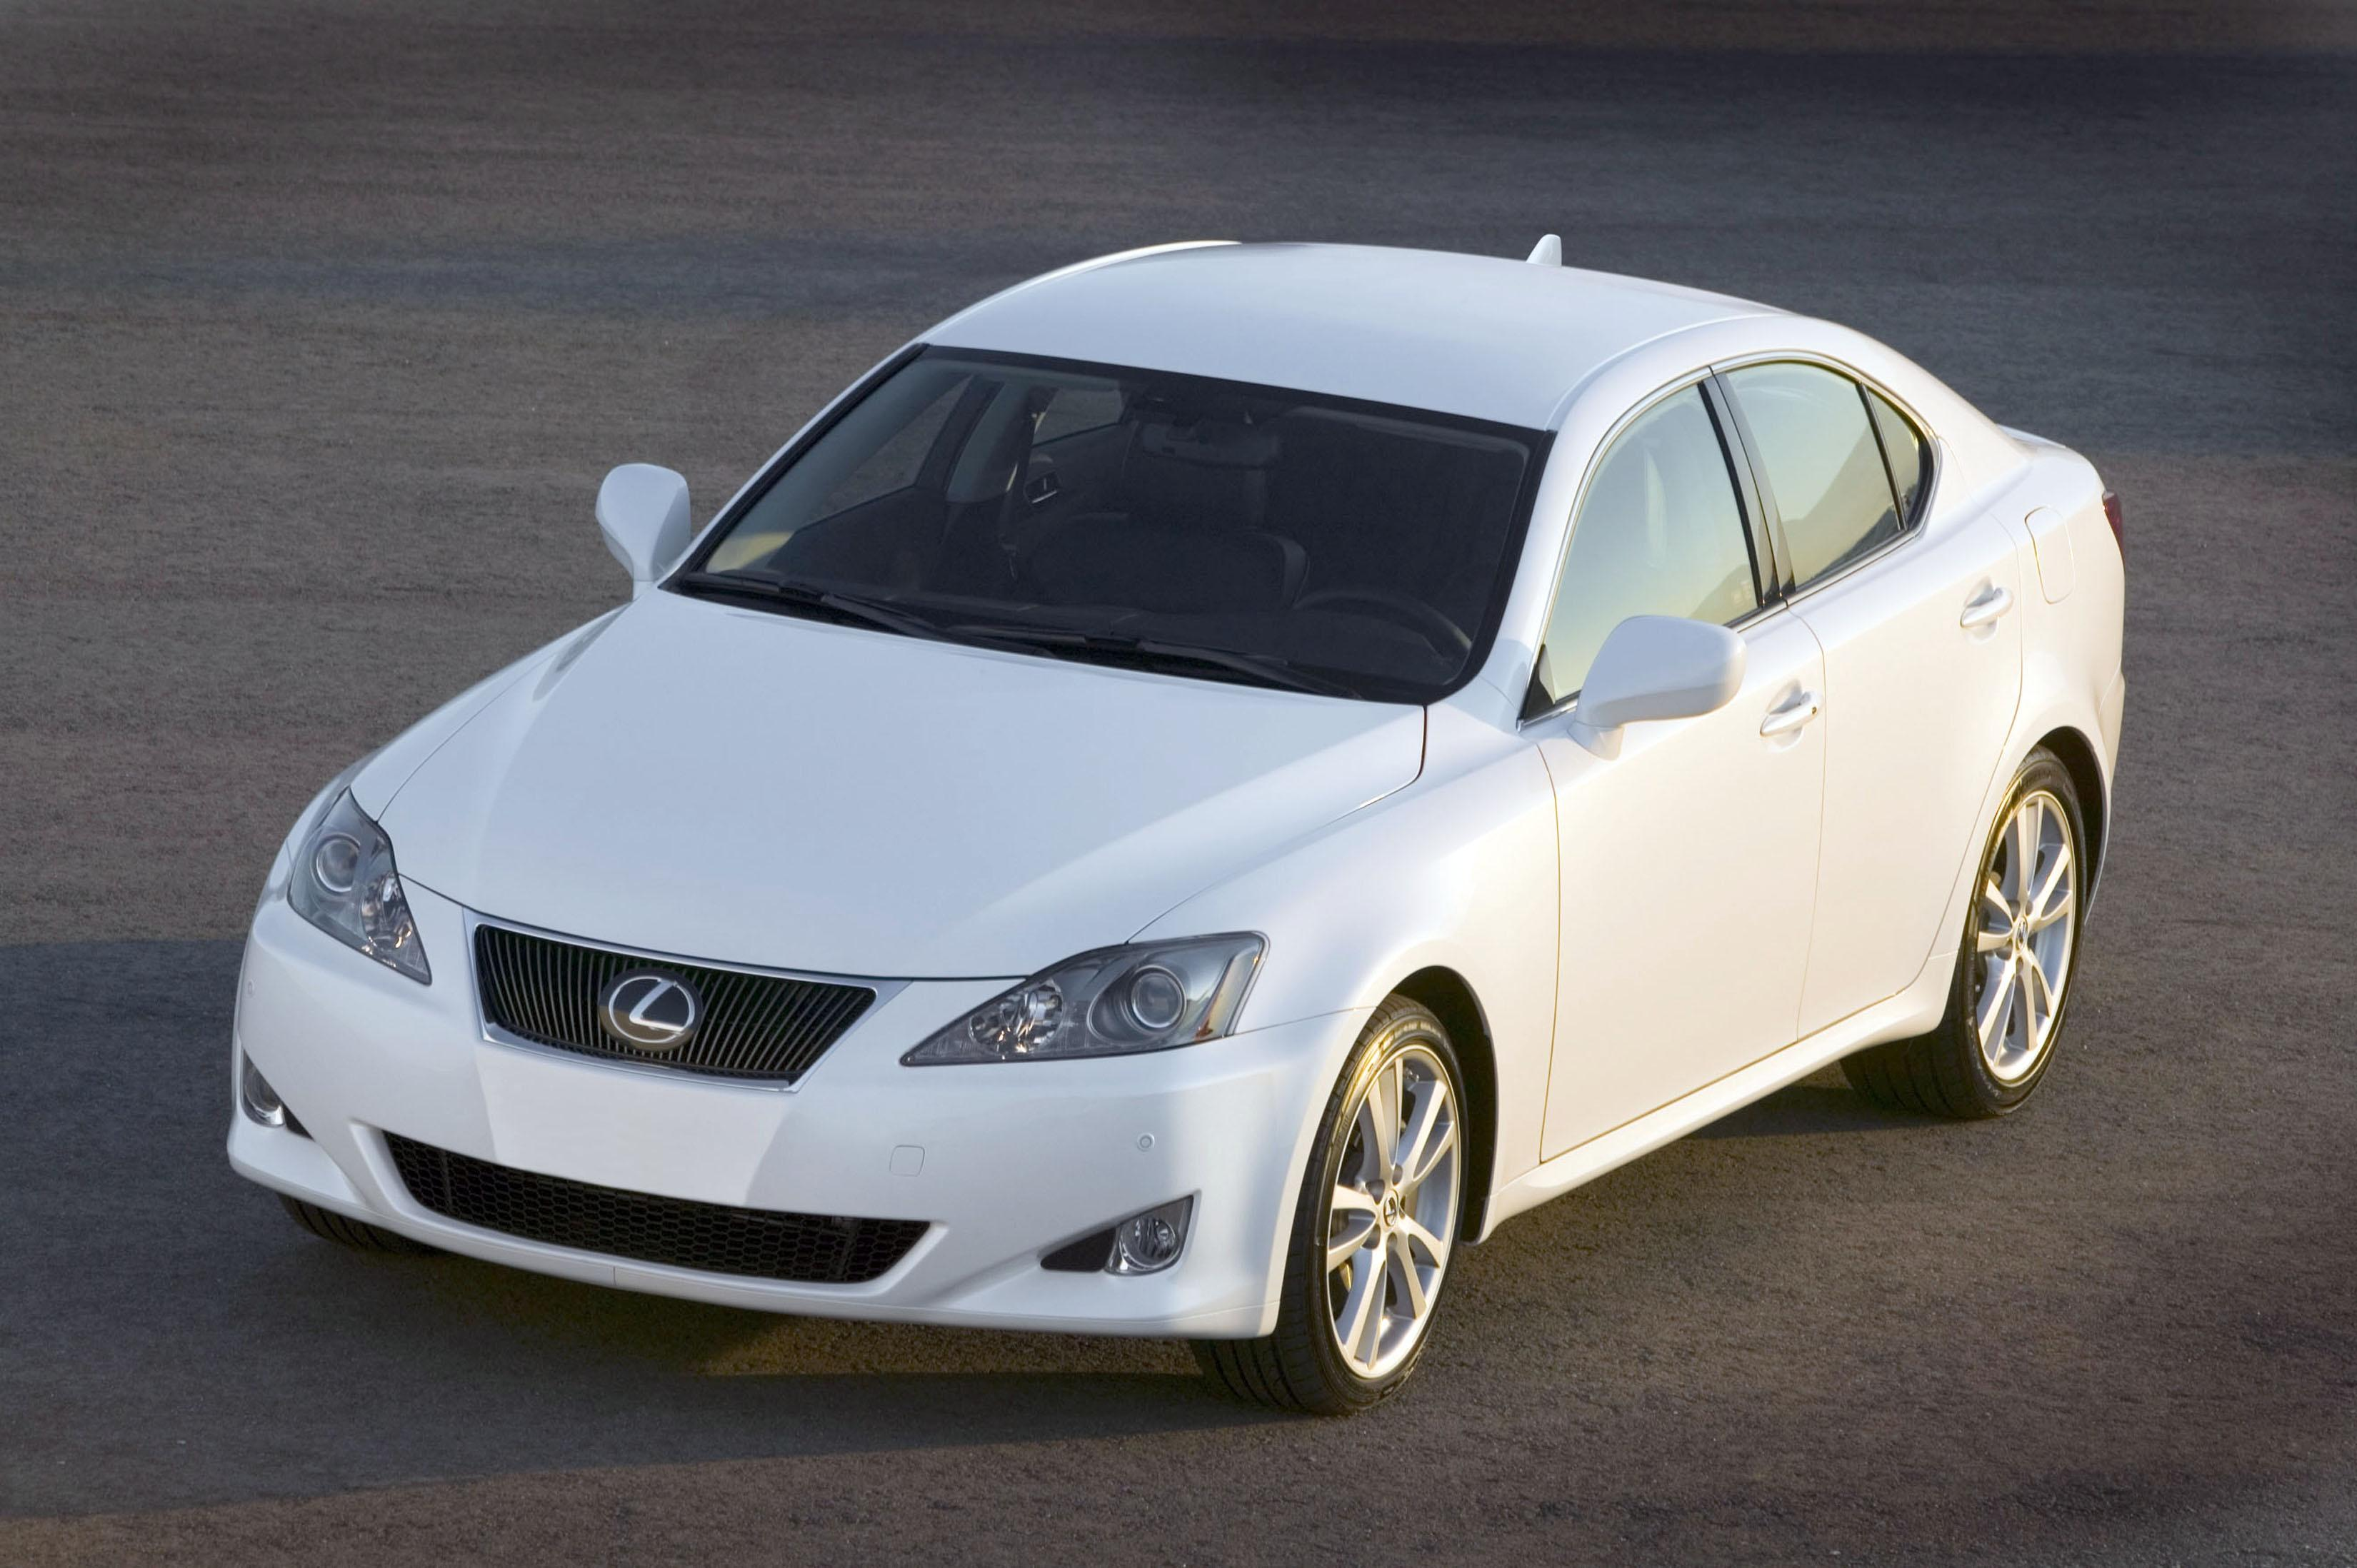 2007 Lexus IS 350 Top Speed